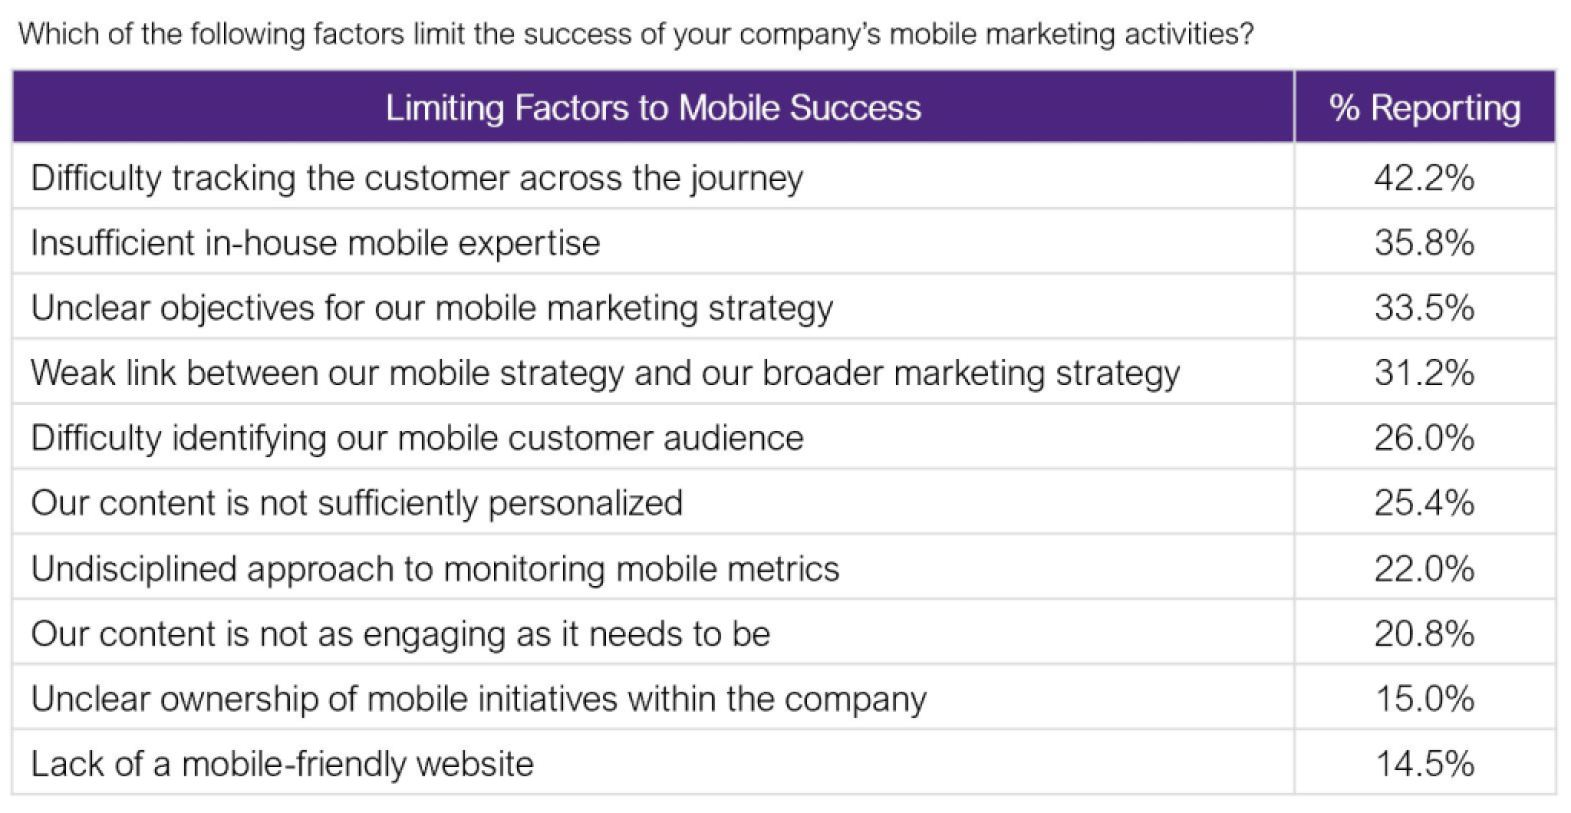 Which of the following factors limit the success of your company's mobile marketing activities?